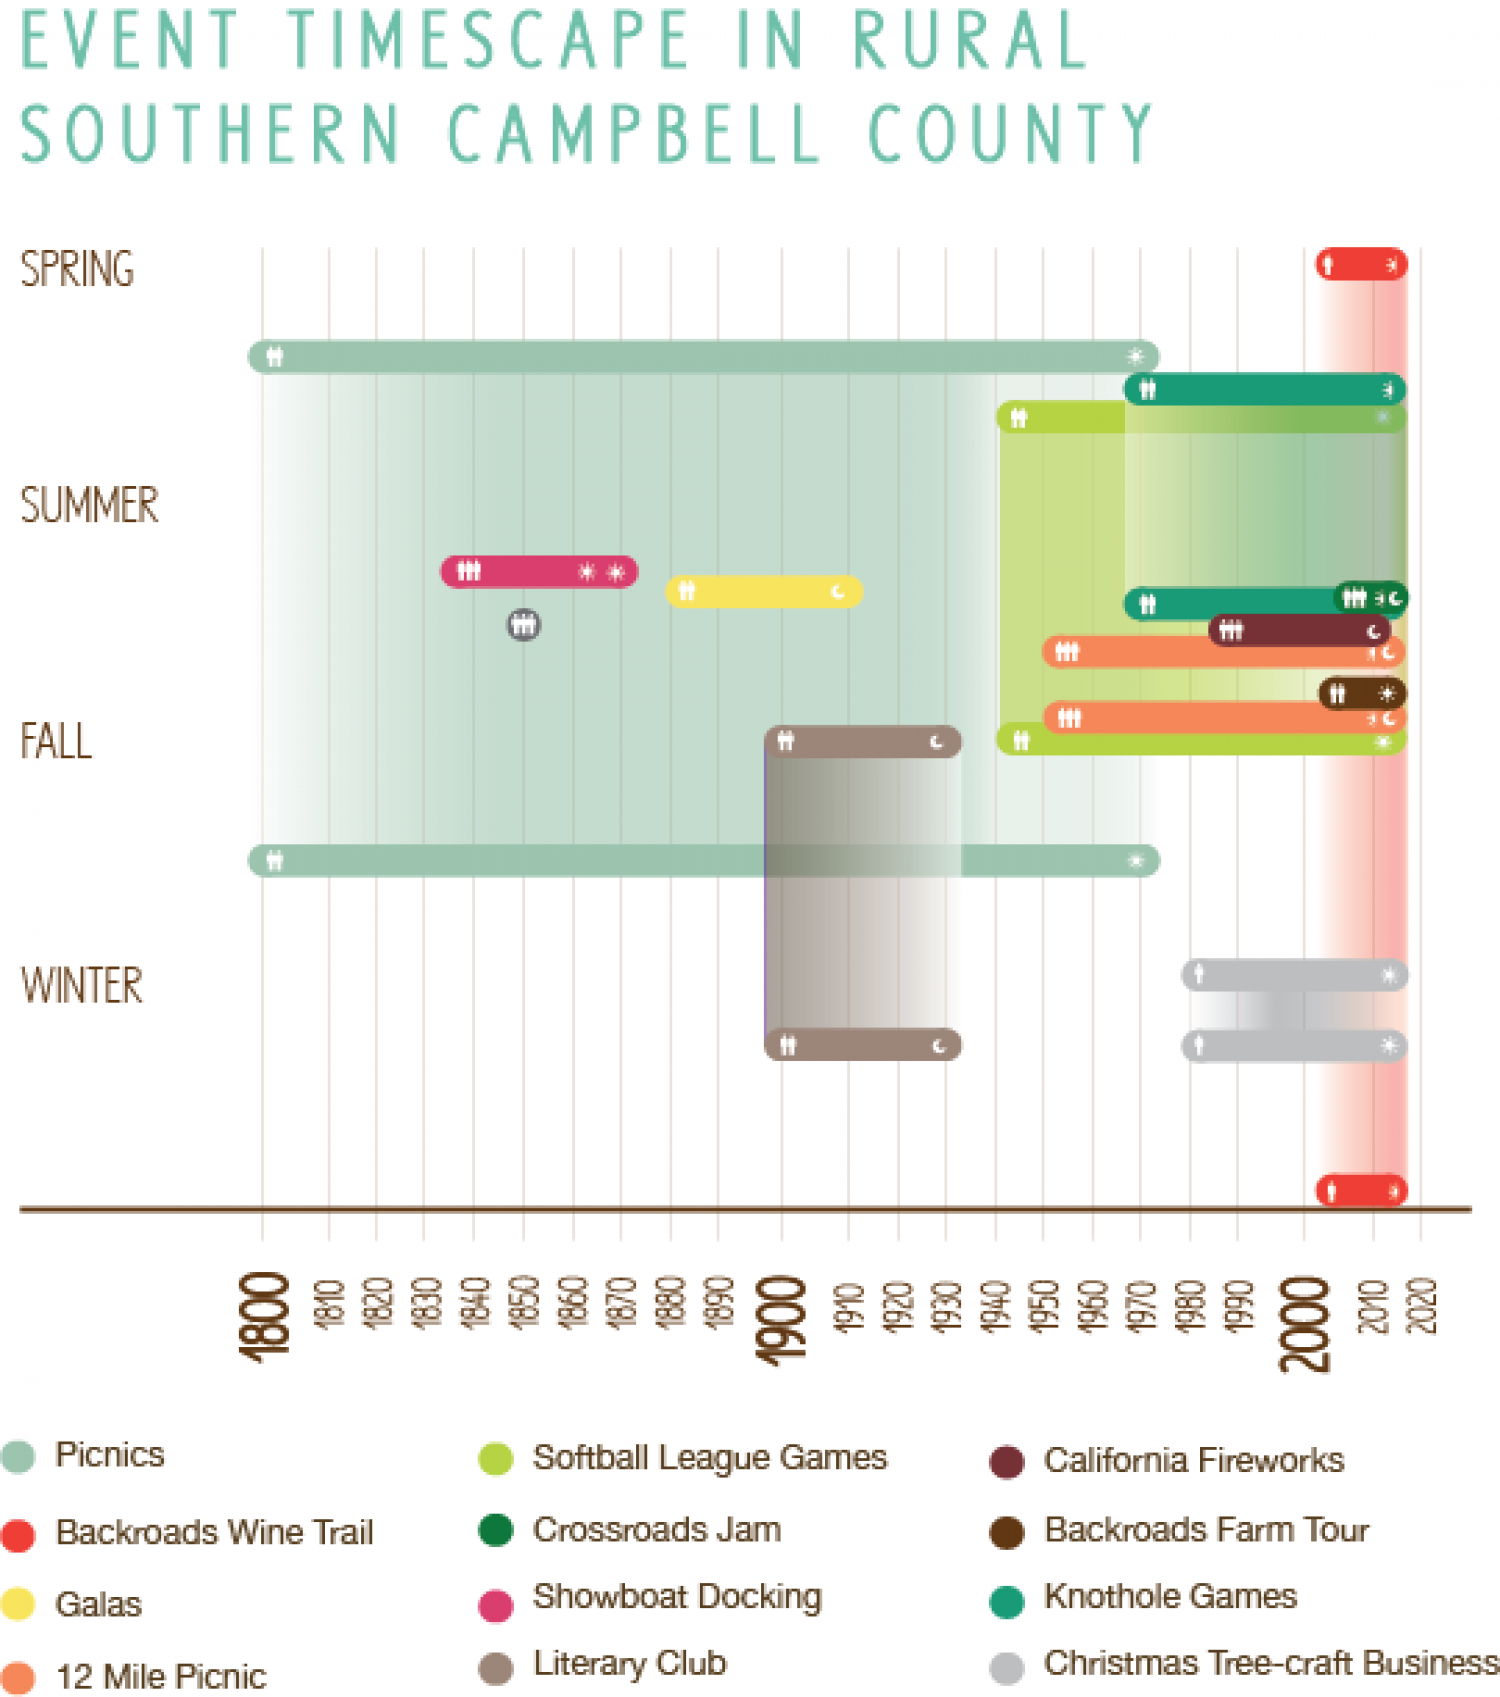 Event Timescape in Rural Southern Campbell County Infographic